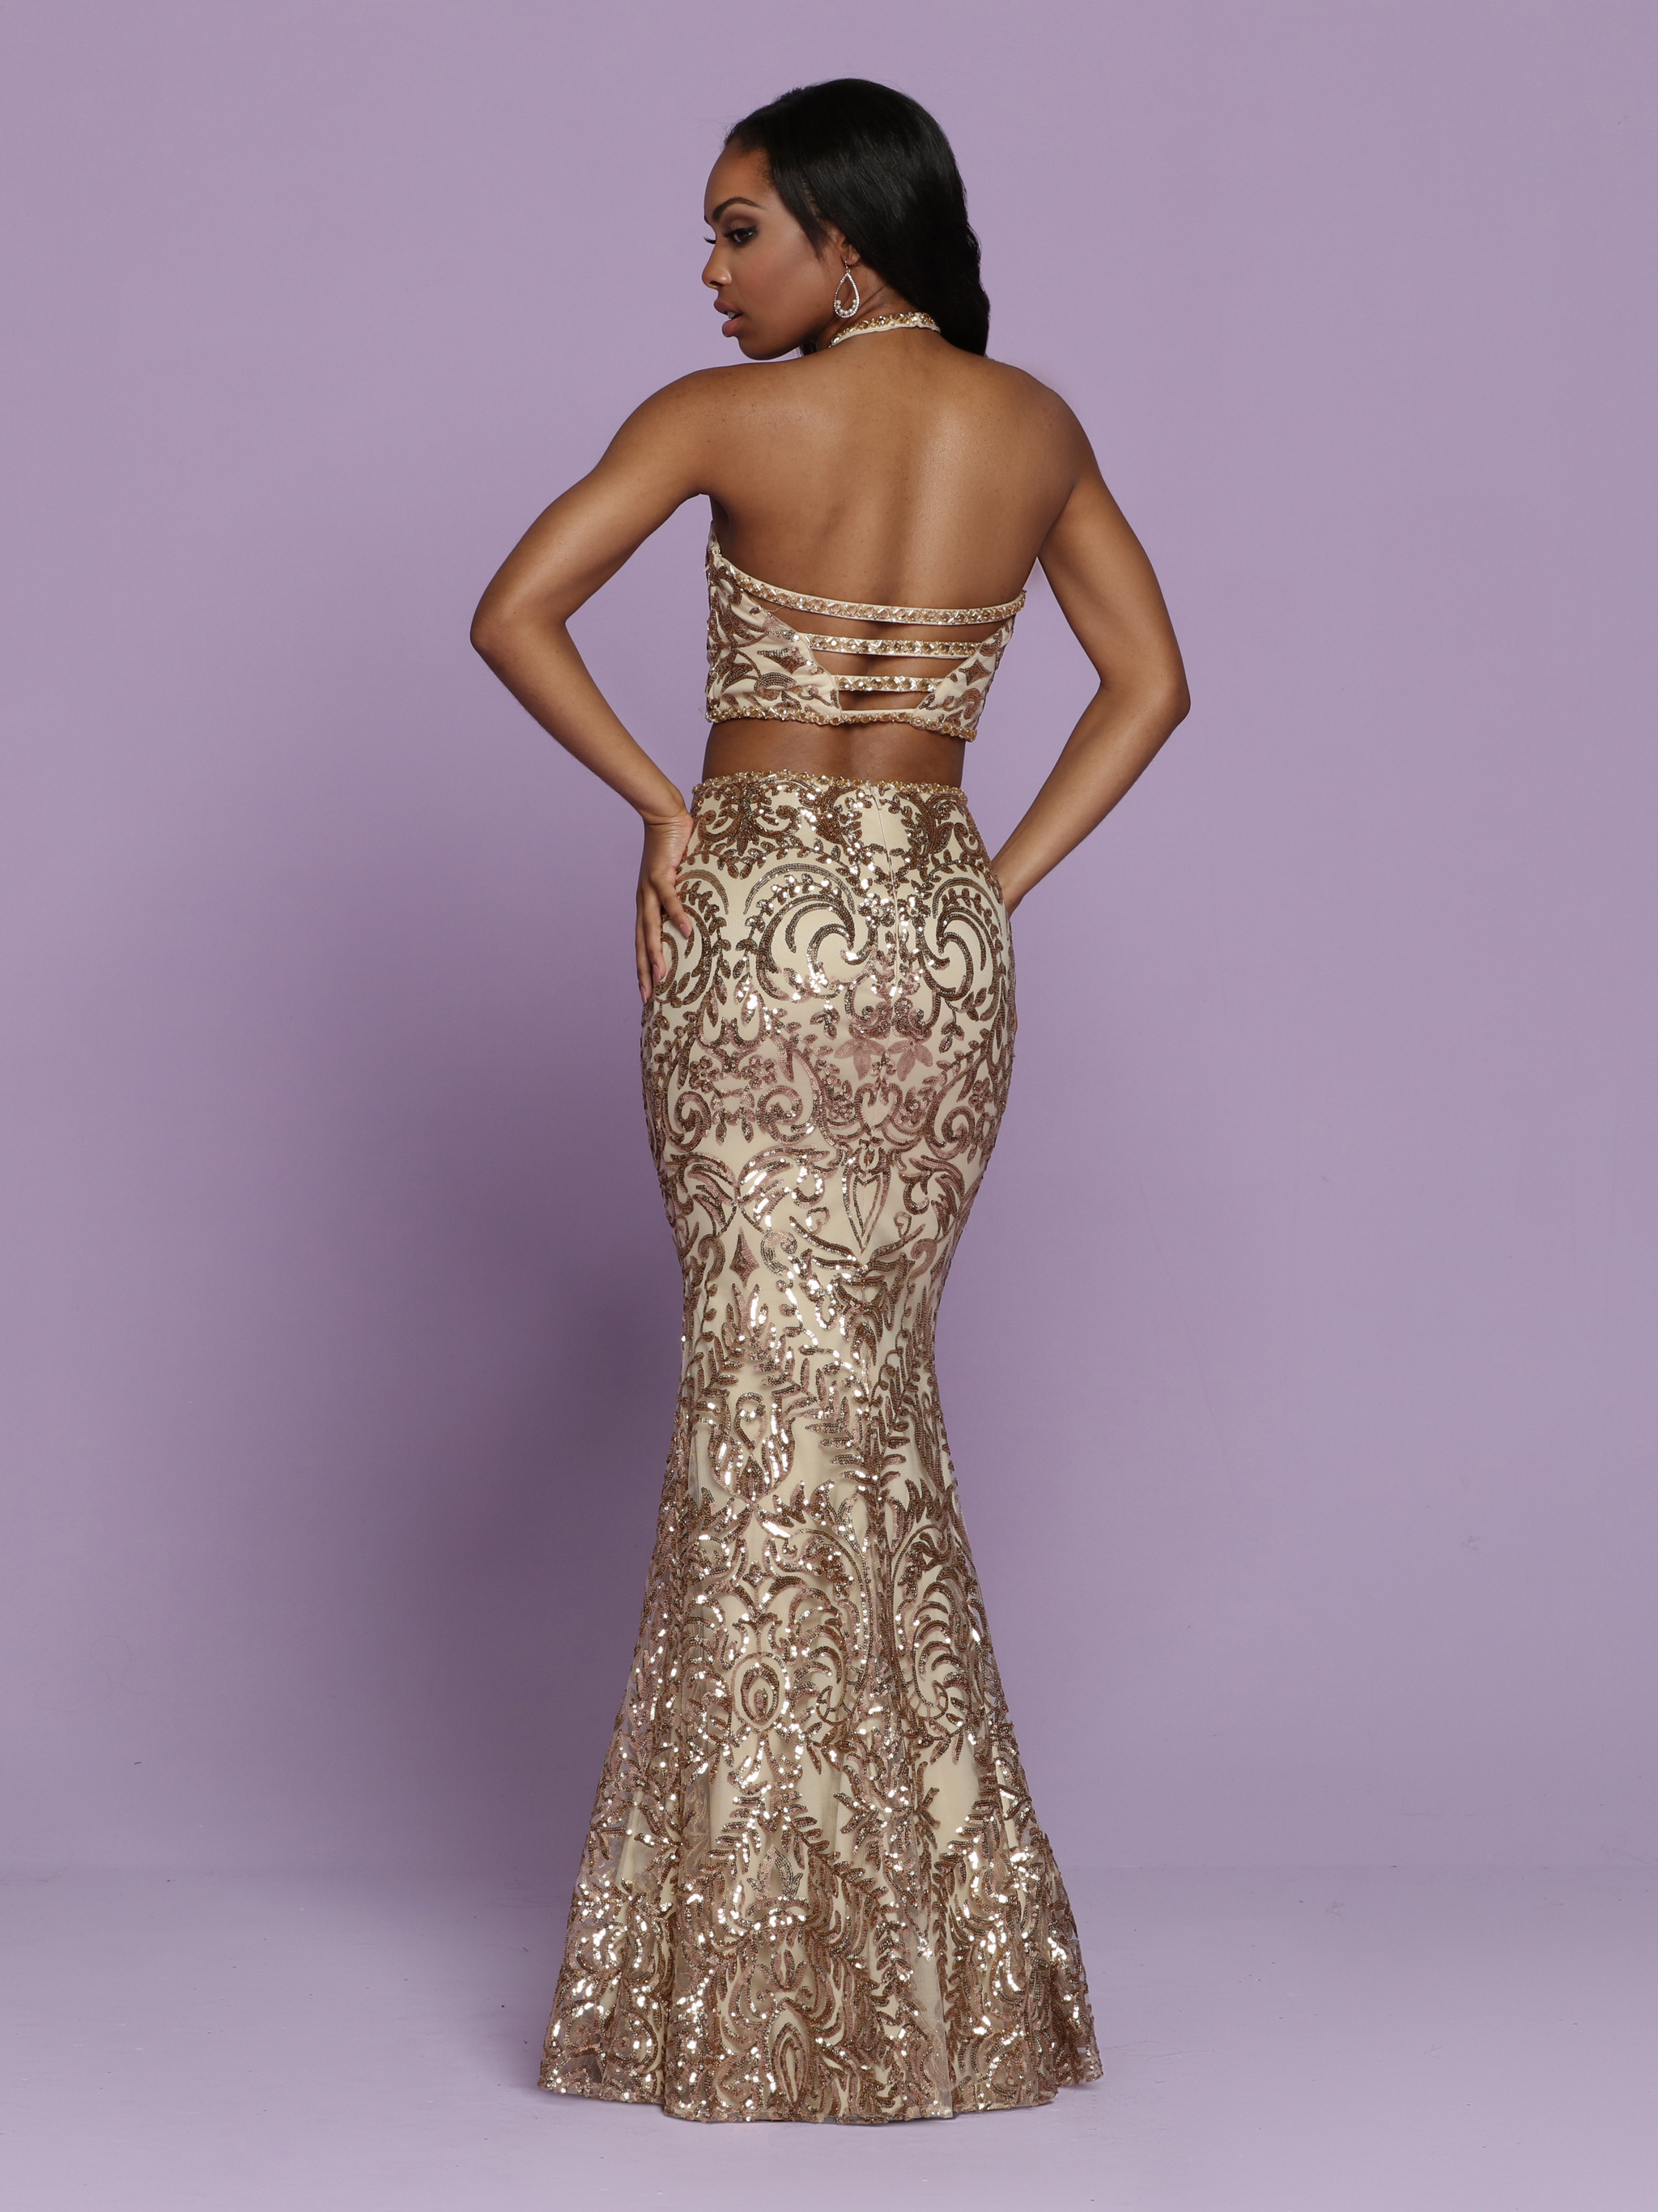 Image showing back view of style #72045